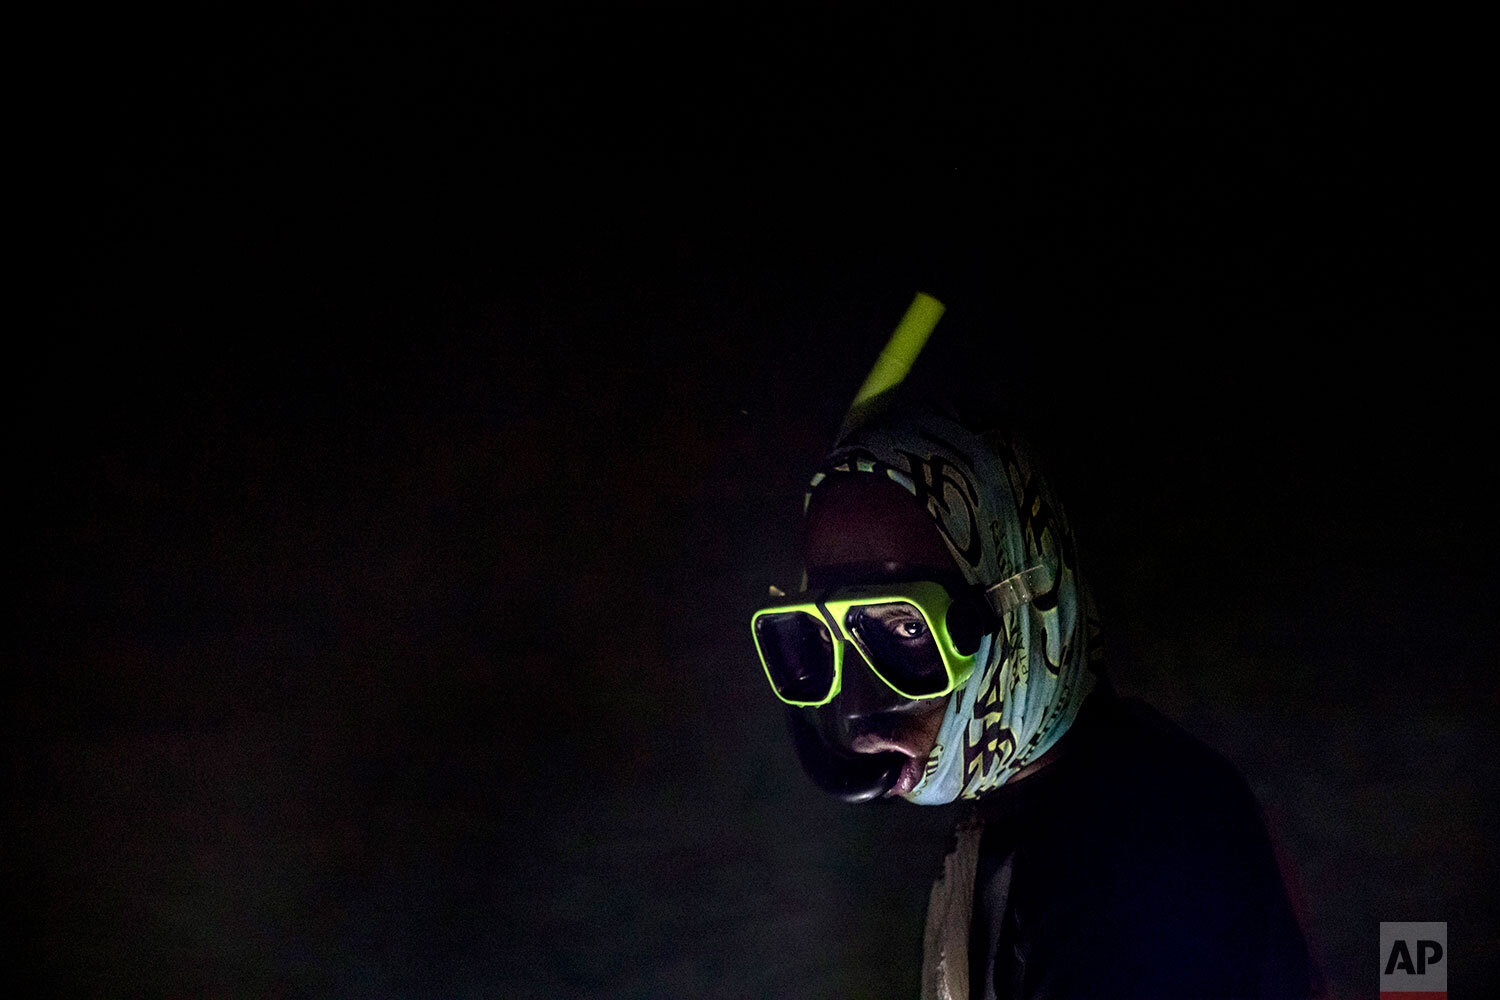 Nicholas Bingham enters the water to go night spearfishing, which is banned, especially in the sanctuaries set up to protect the island's endangered coral reefs and replenish fish stocks, in Stewart Town, Jamaica, Friday, Feb. 15, 2019. The restrictions have taken a toll on many Jamaicans' livelihoods, in a place where jobs can be scarce. In some places, fishermen have joined with local businesses to form marine associations and negotiate a no-fishing zone. But that simple line in the water must be enforced. (AP Photo/David Goldman)